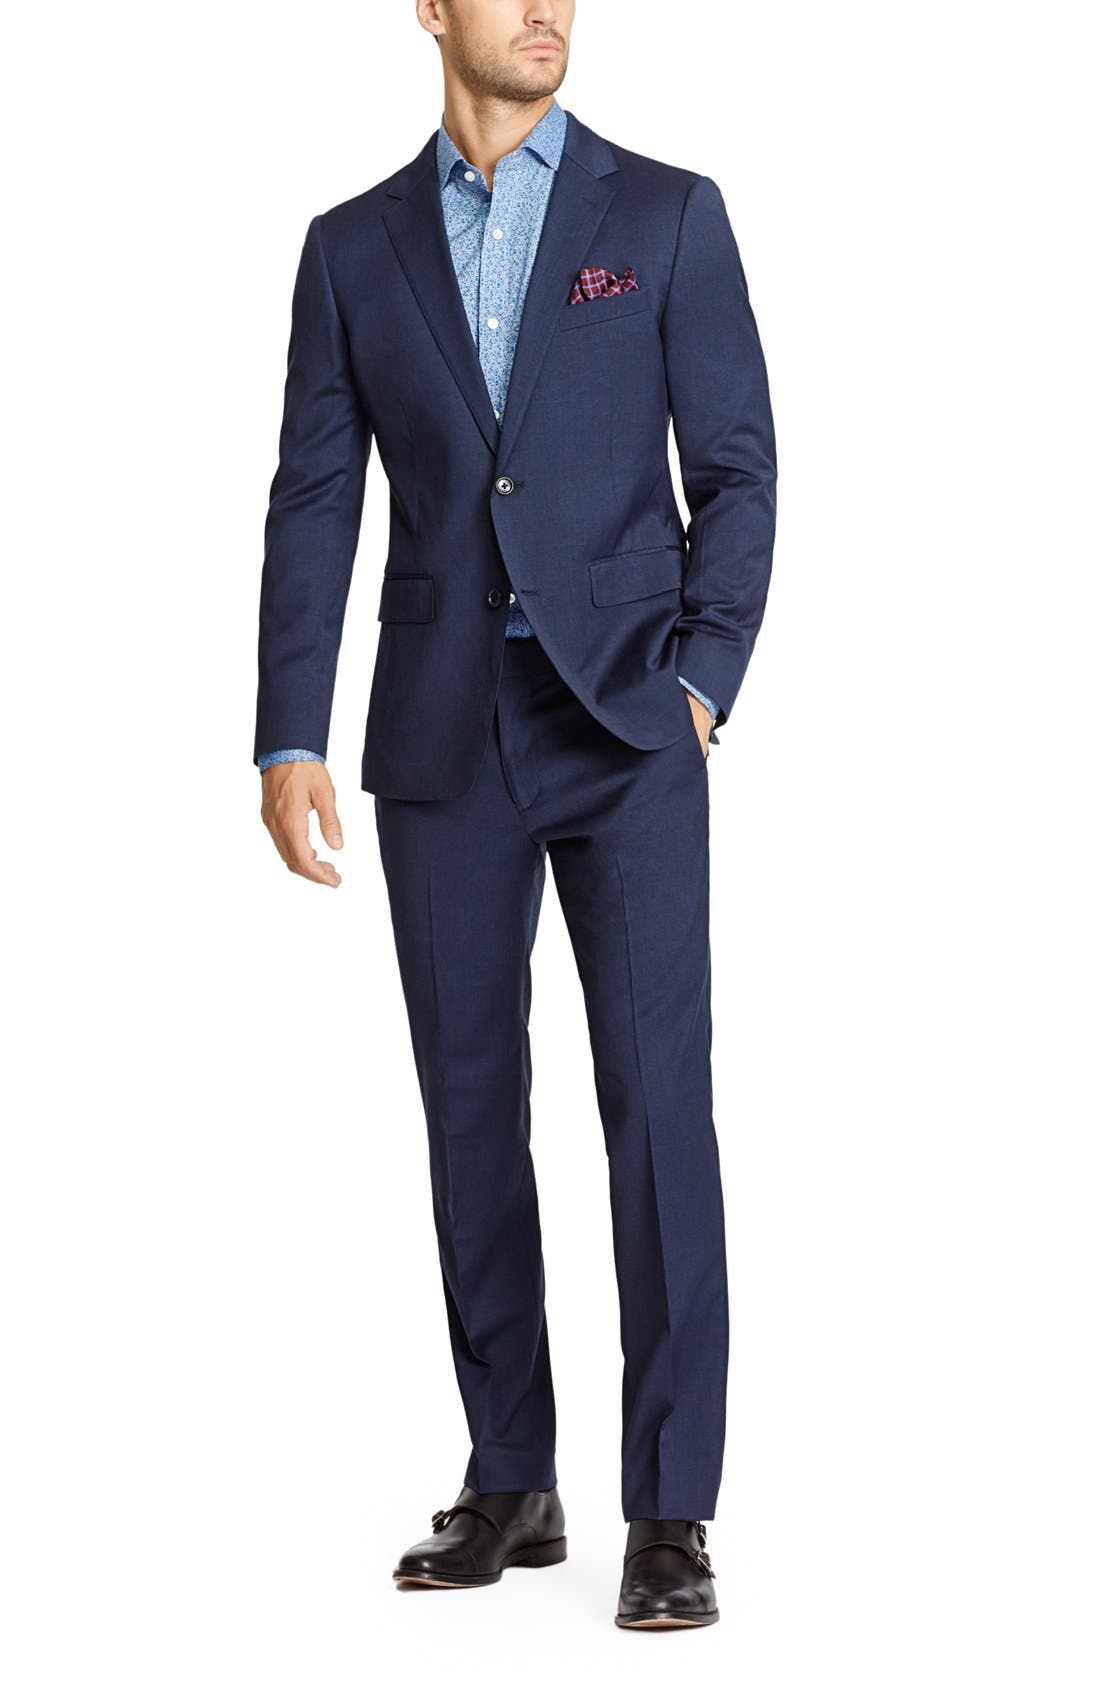 Bonobos 'Jetsetter' Slim Fit Jacket & Trousers